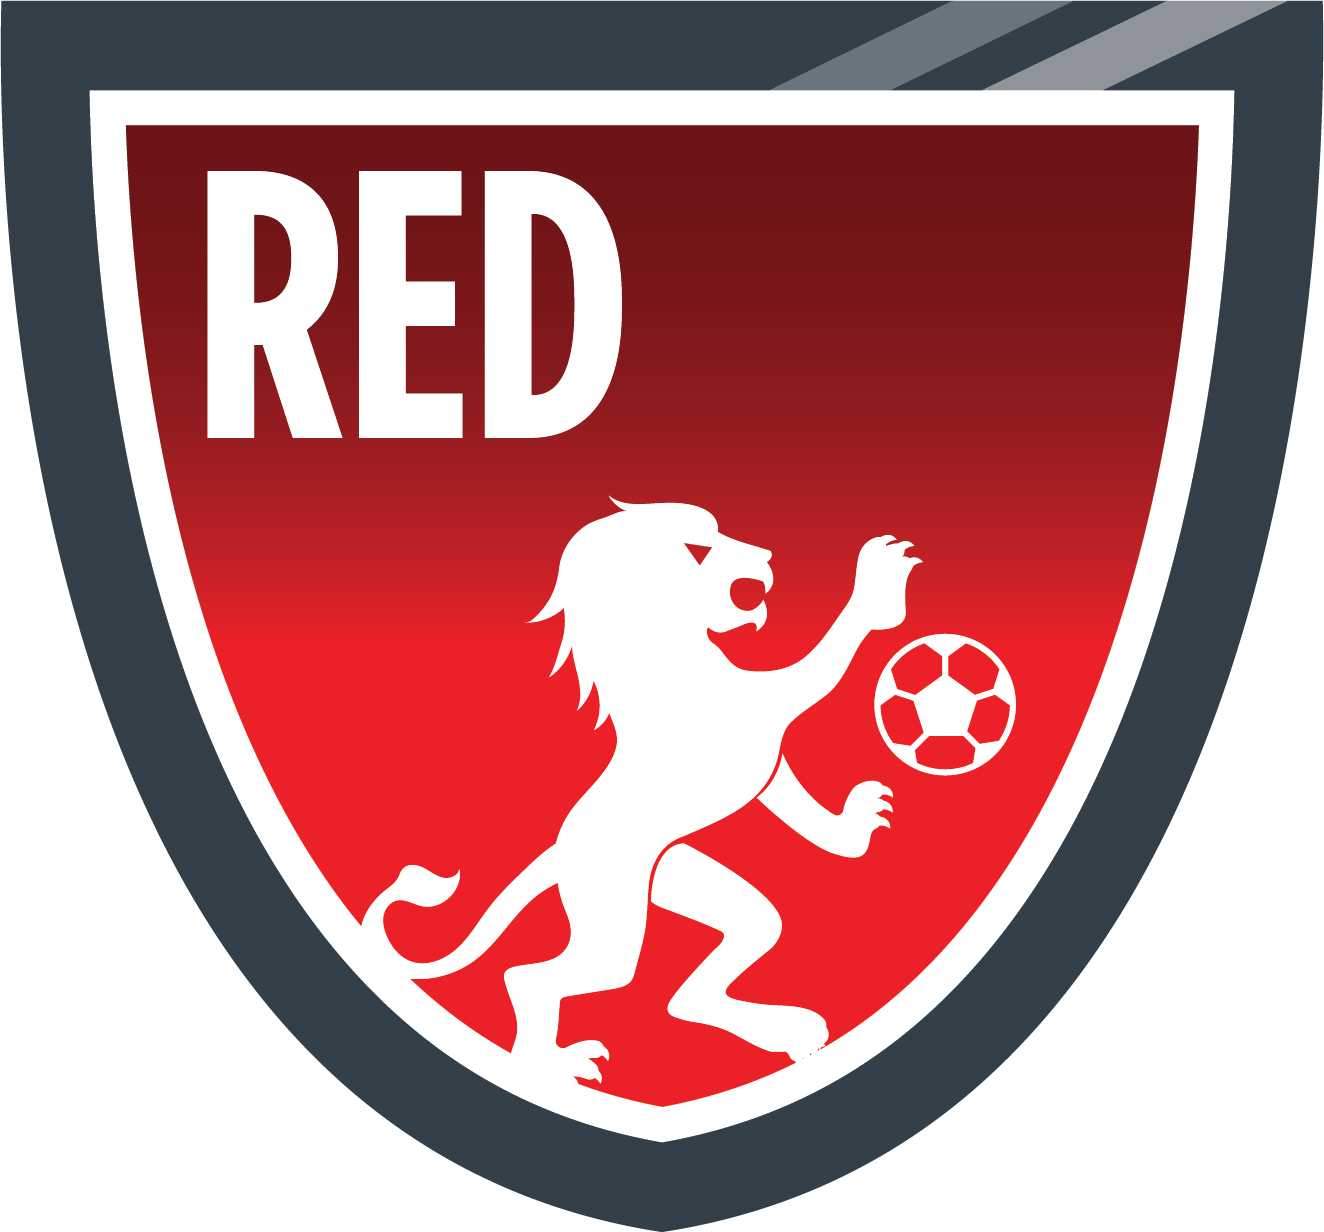 red_academy_badge_large.jpg